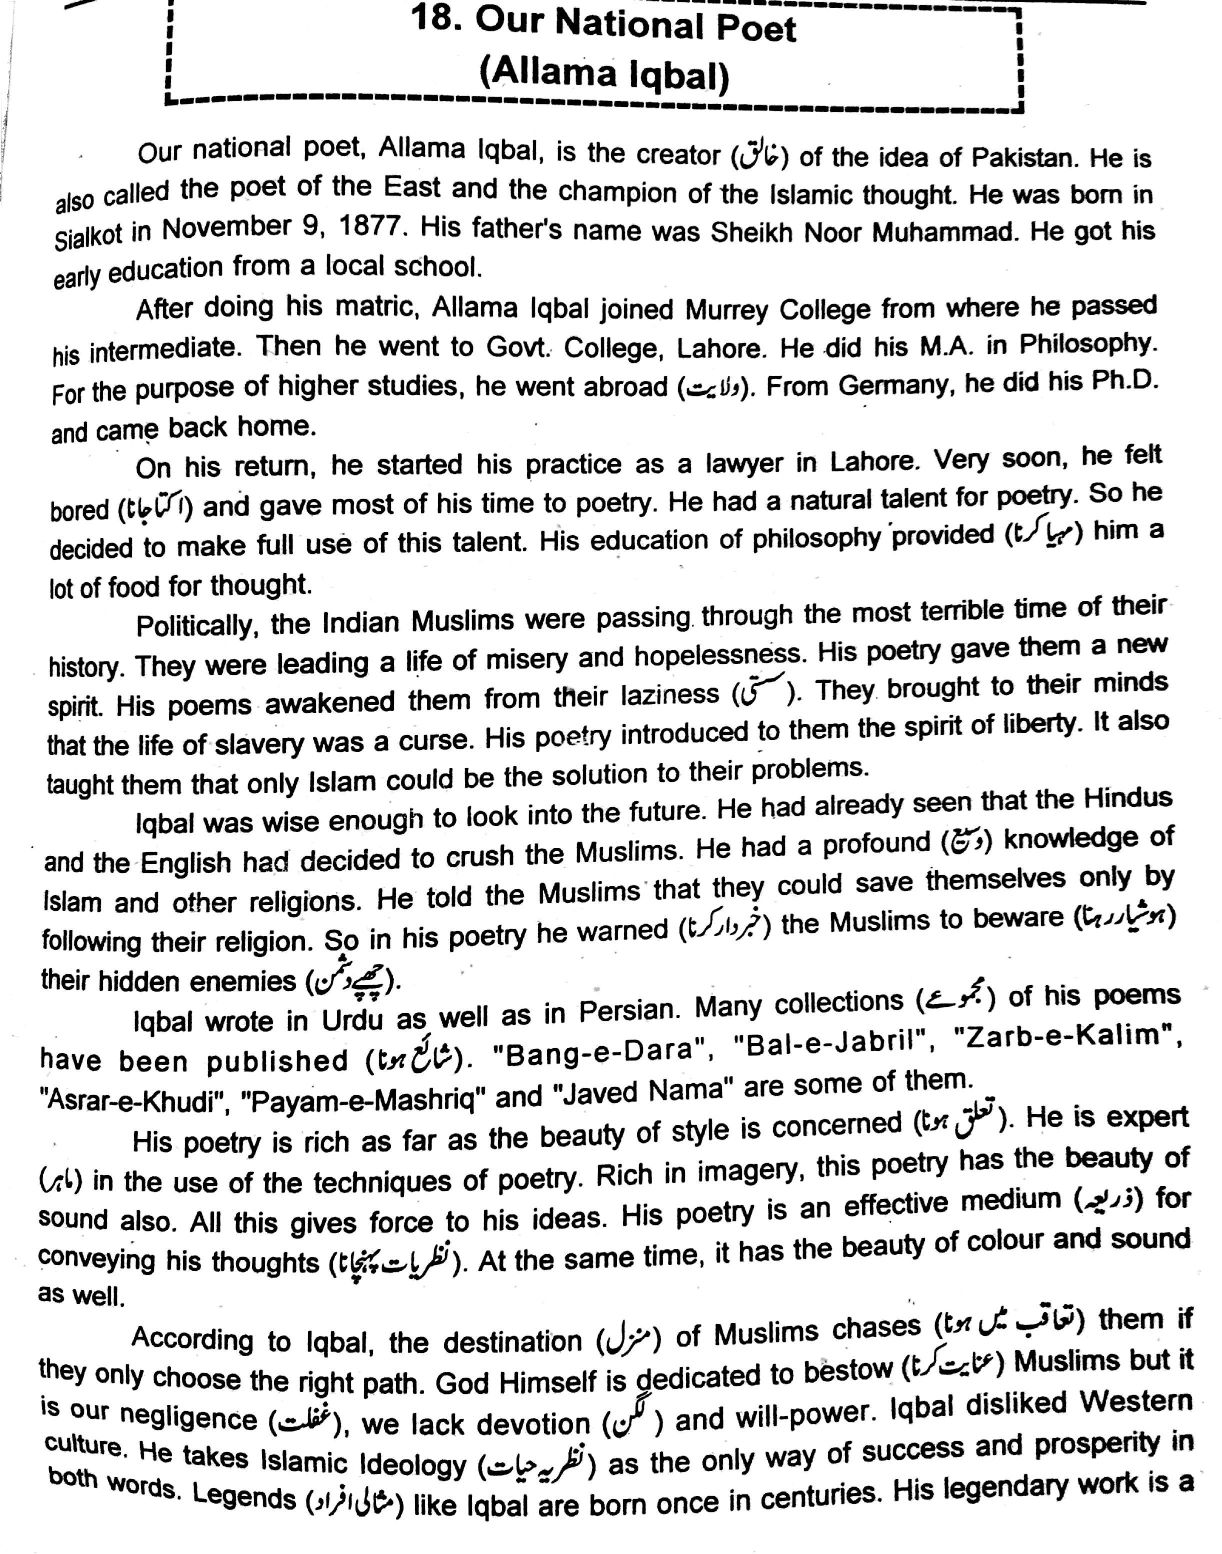 my class essay our natioanal poet allama iqbal essay in english our natioanal poet allama iqbal essay in english for primary to essay on allama iqbal in why my class